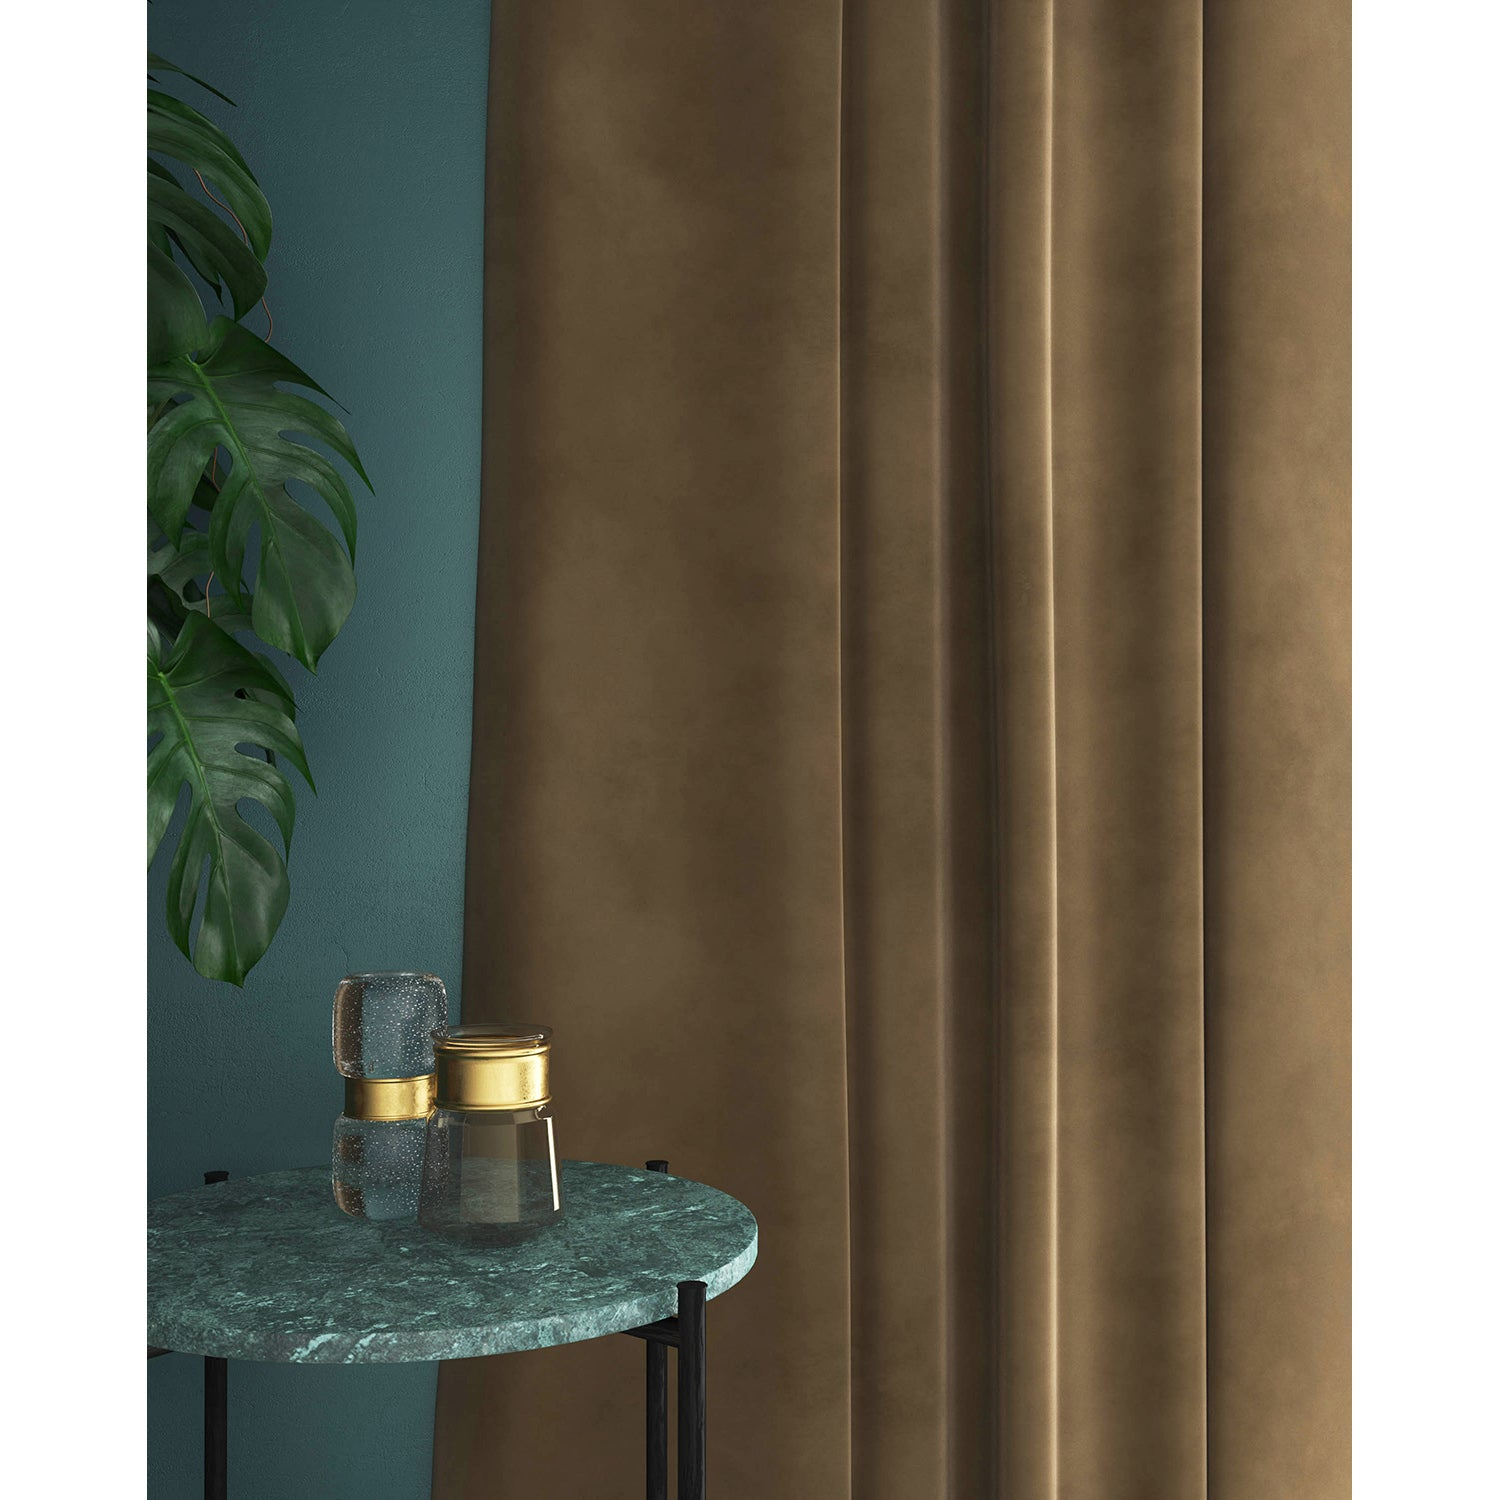 Light brown velvet curtains with a stain resistant finish